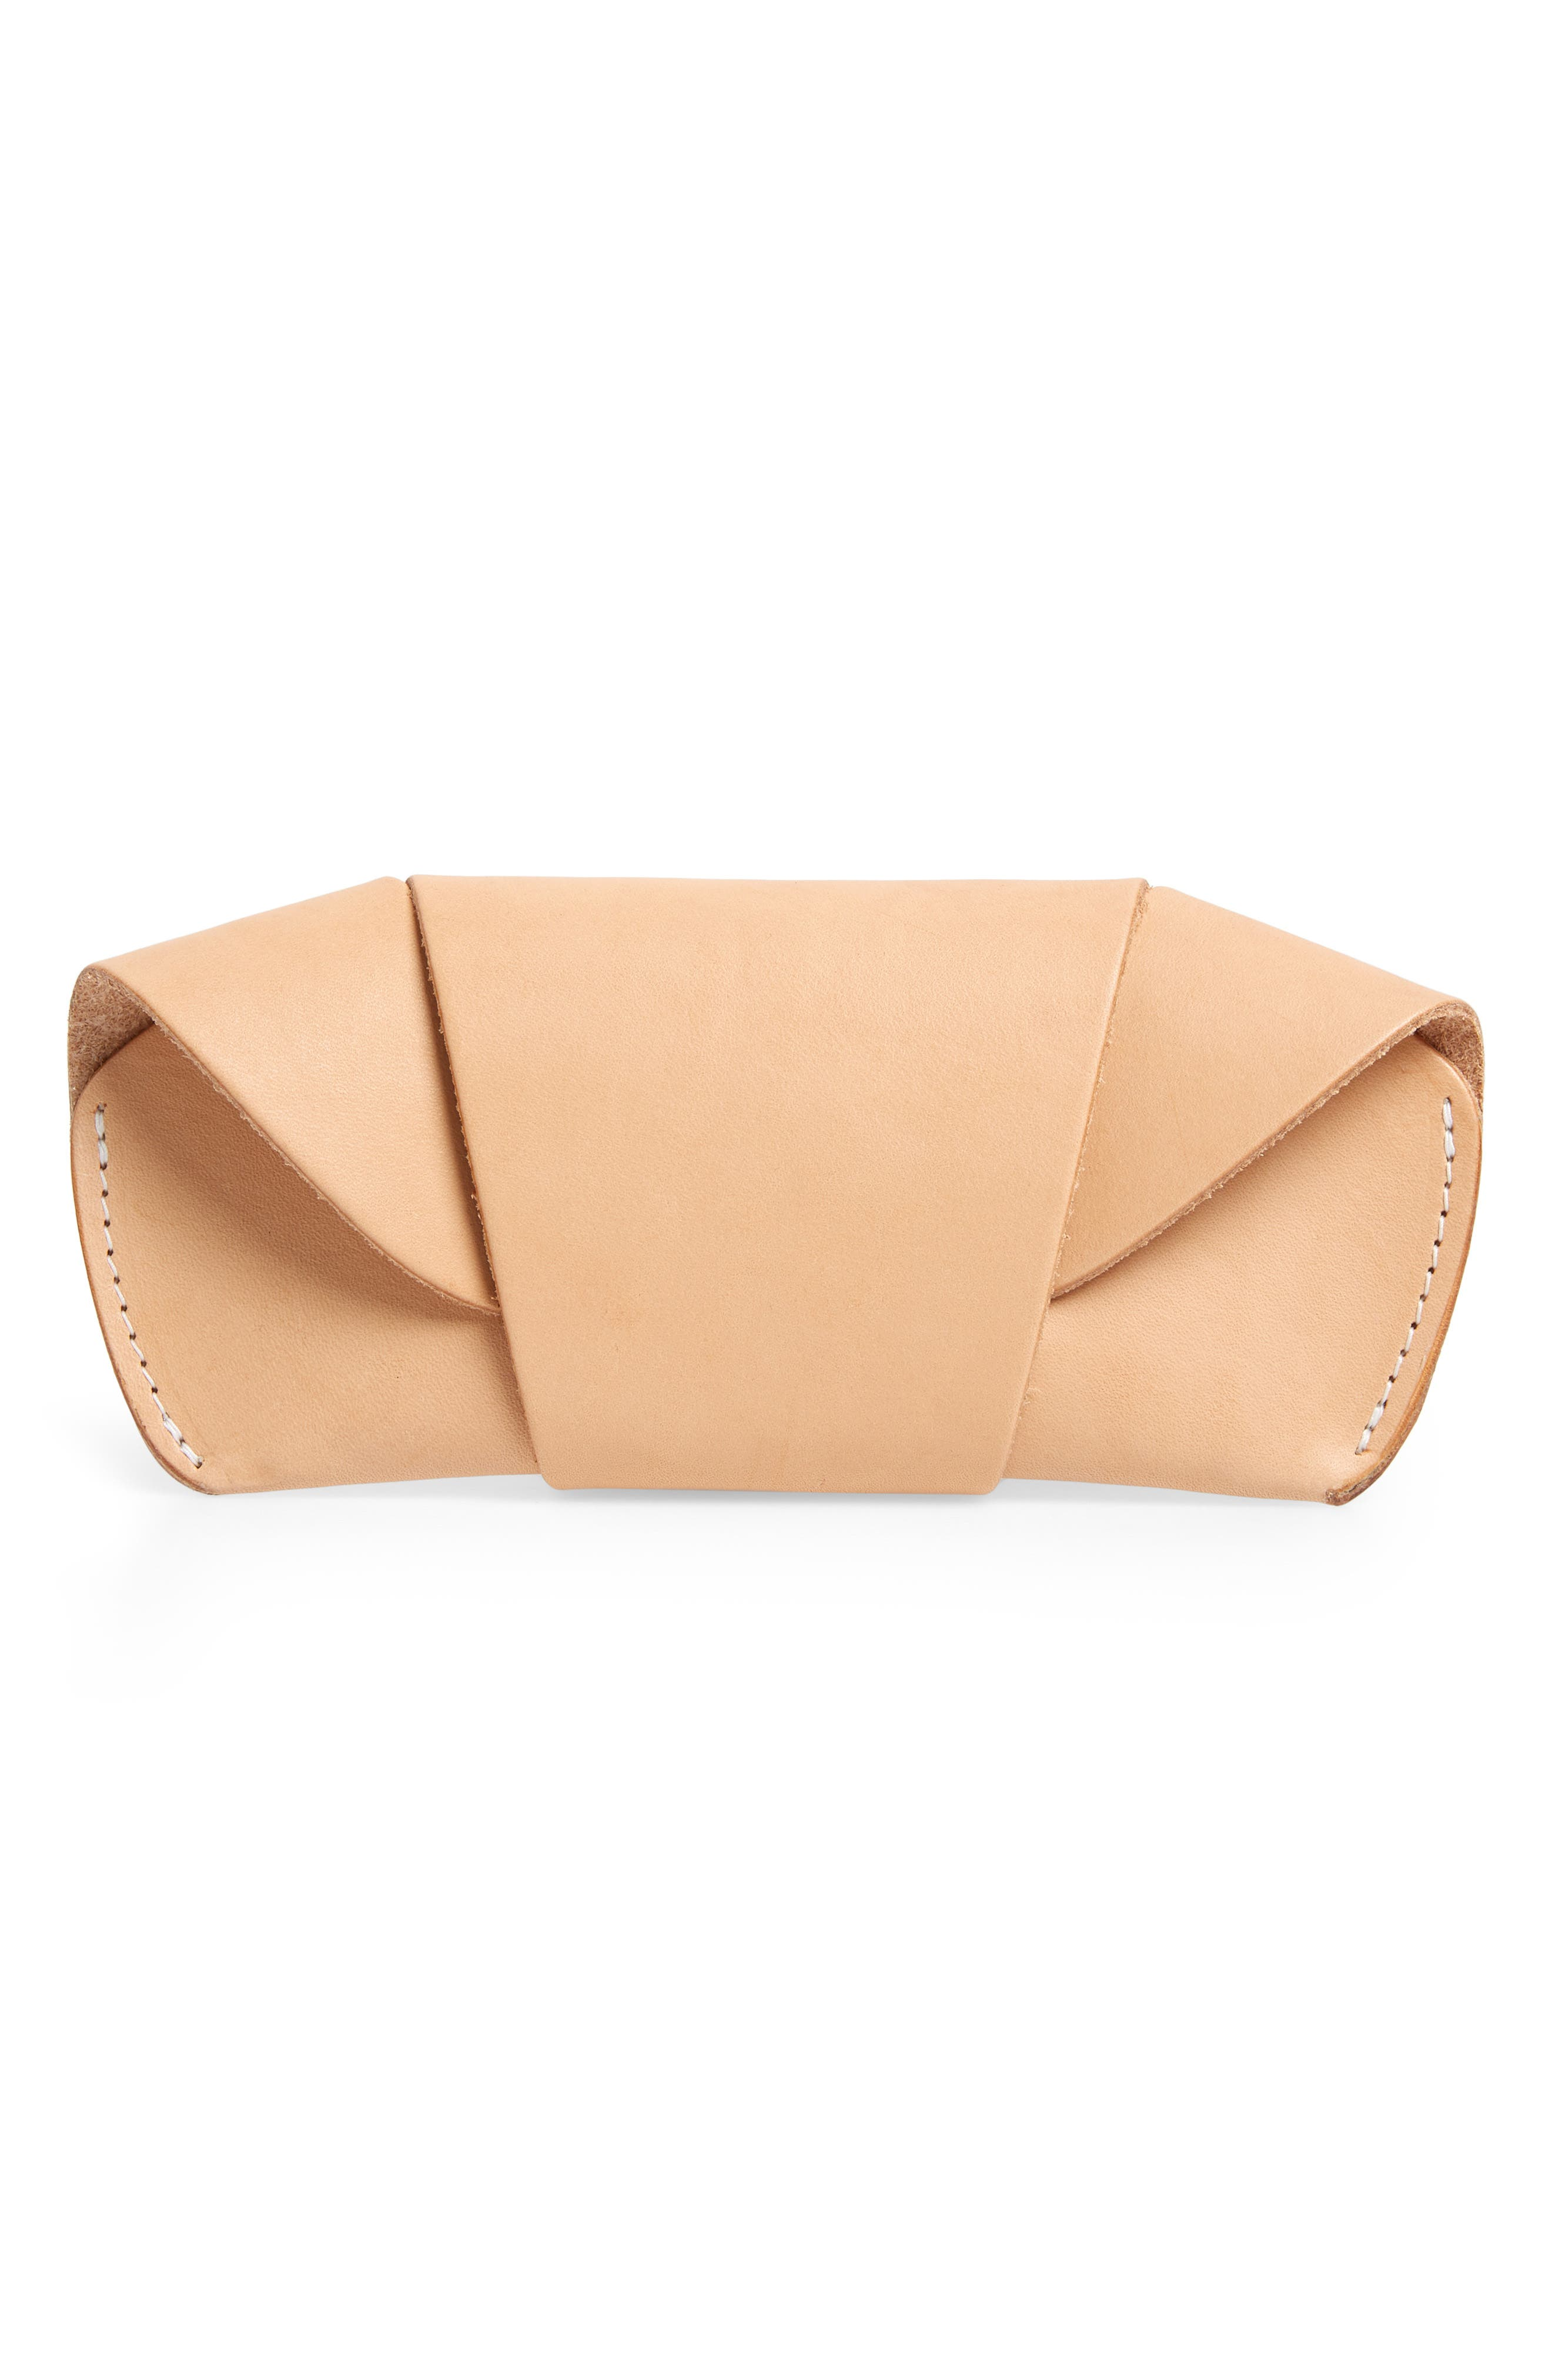 TANNER GOODS LEATHER SUNGLASS CASE - NATURAL